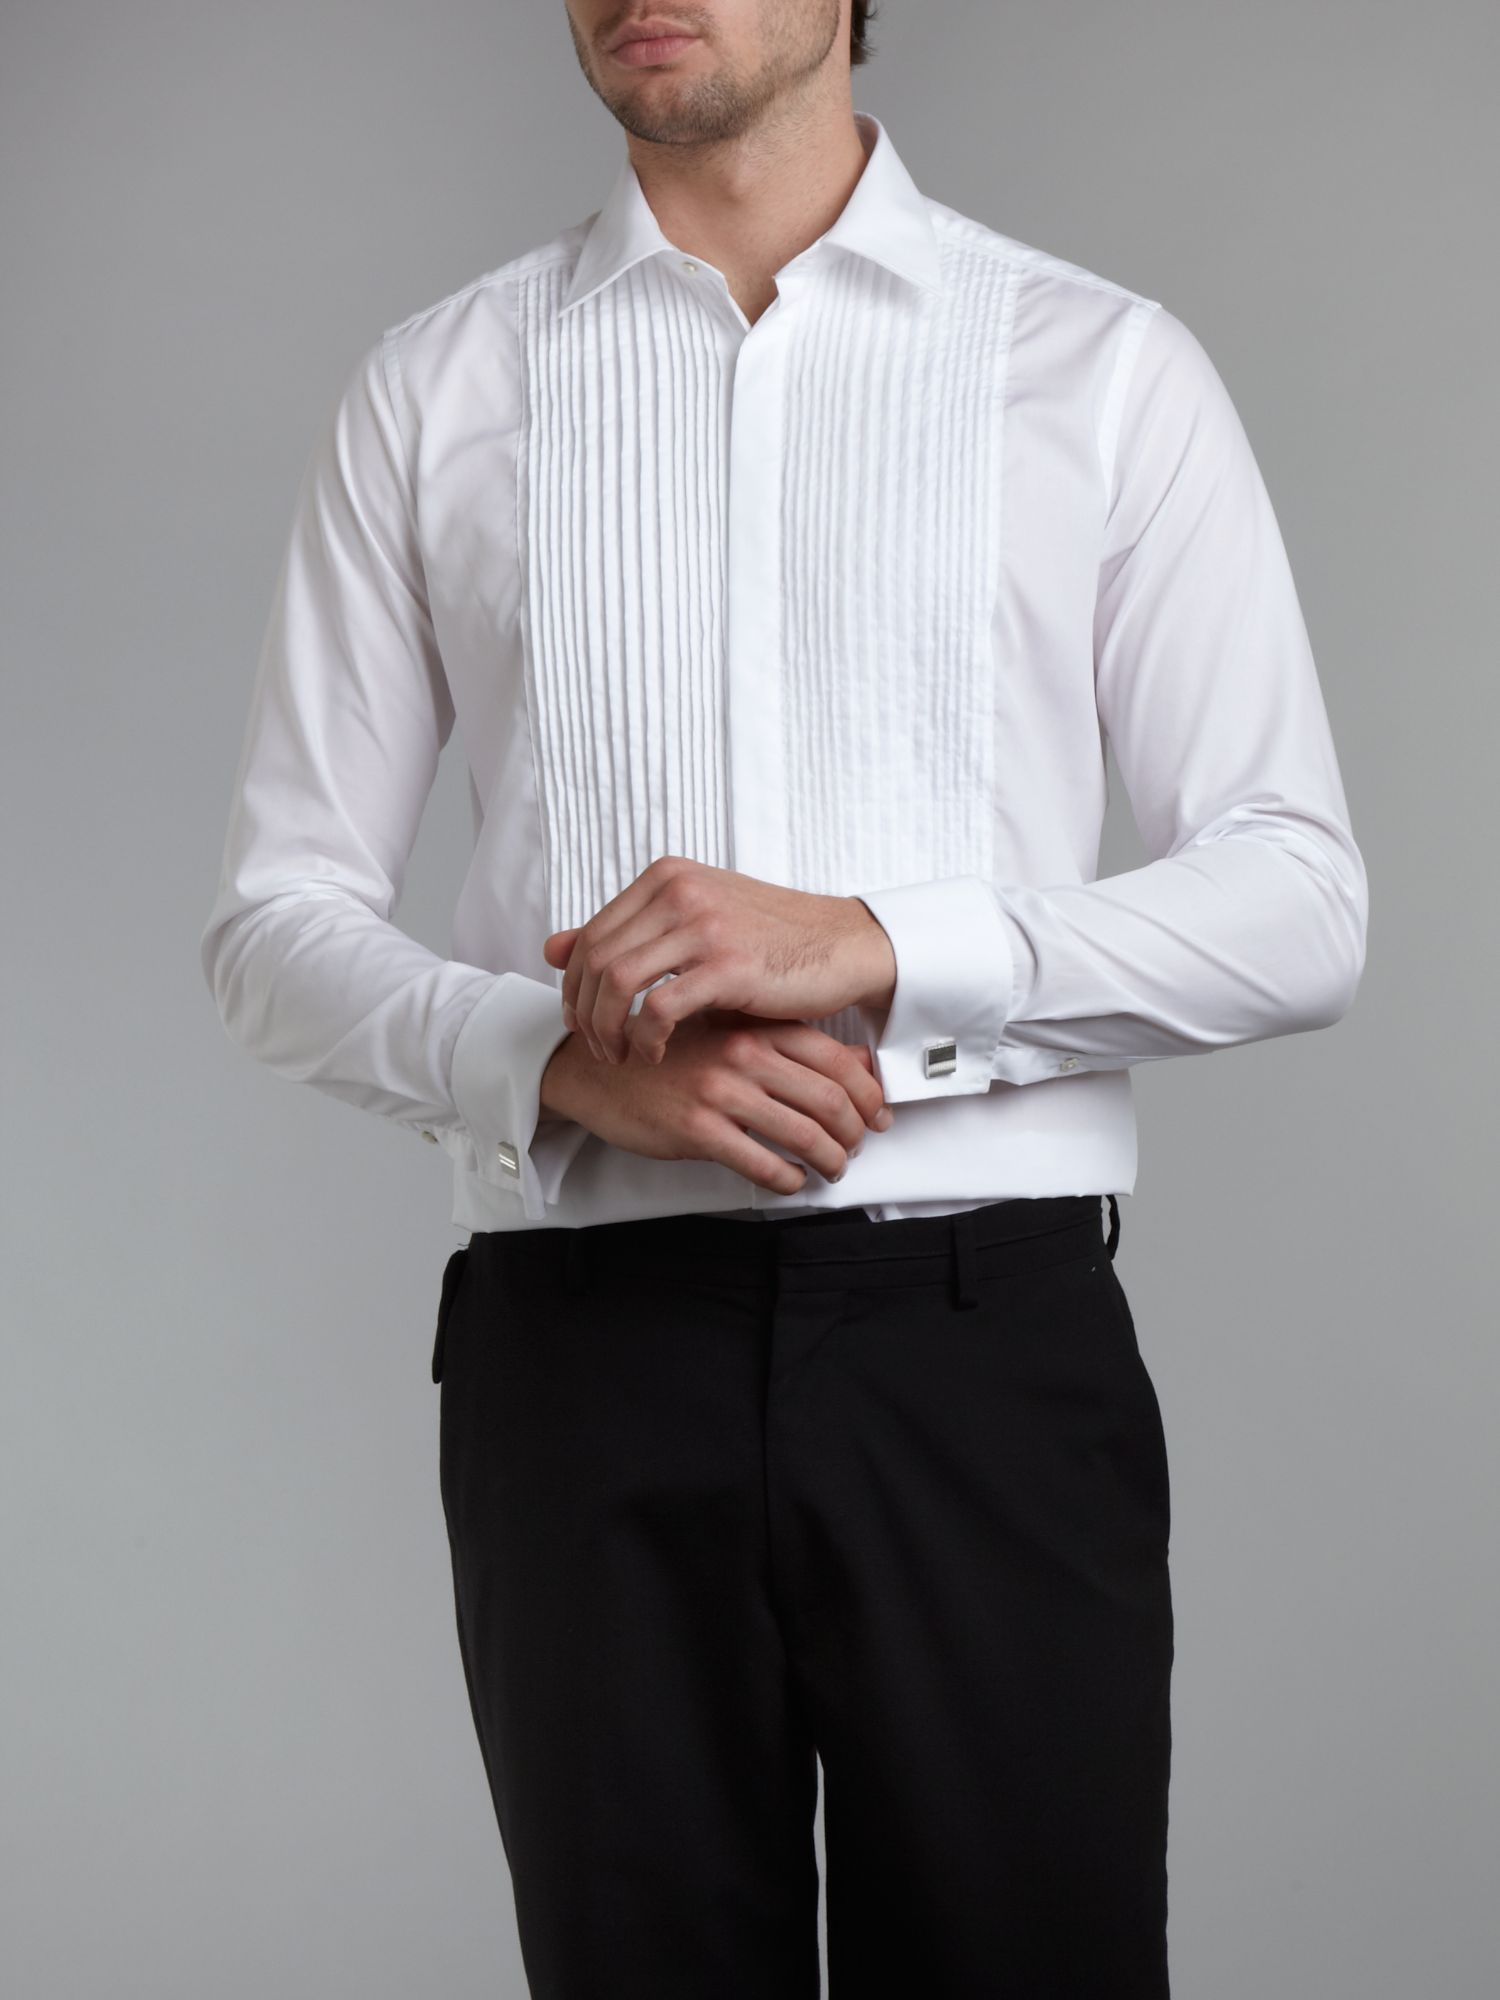 Long-sleeve pleated bib dinner shirt